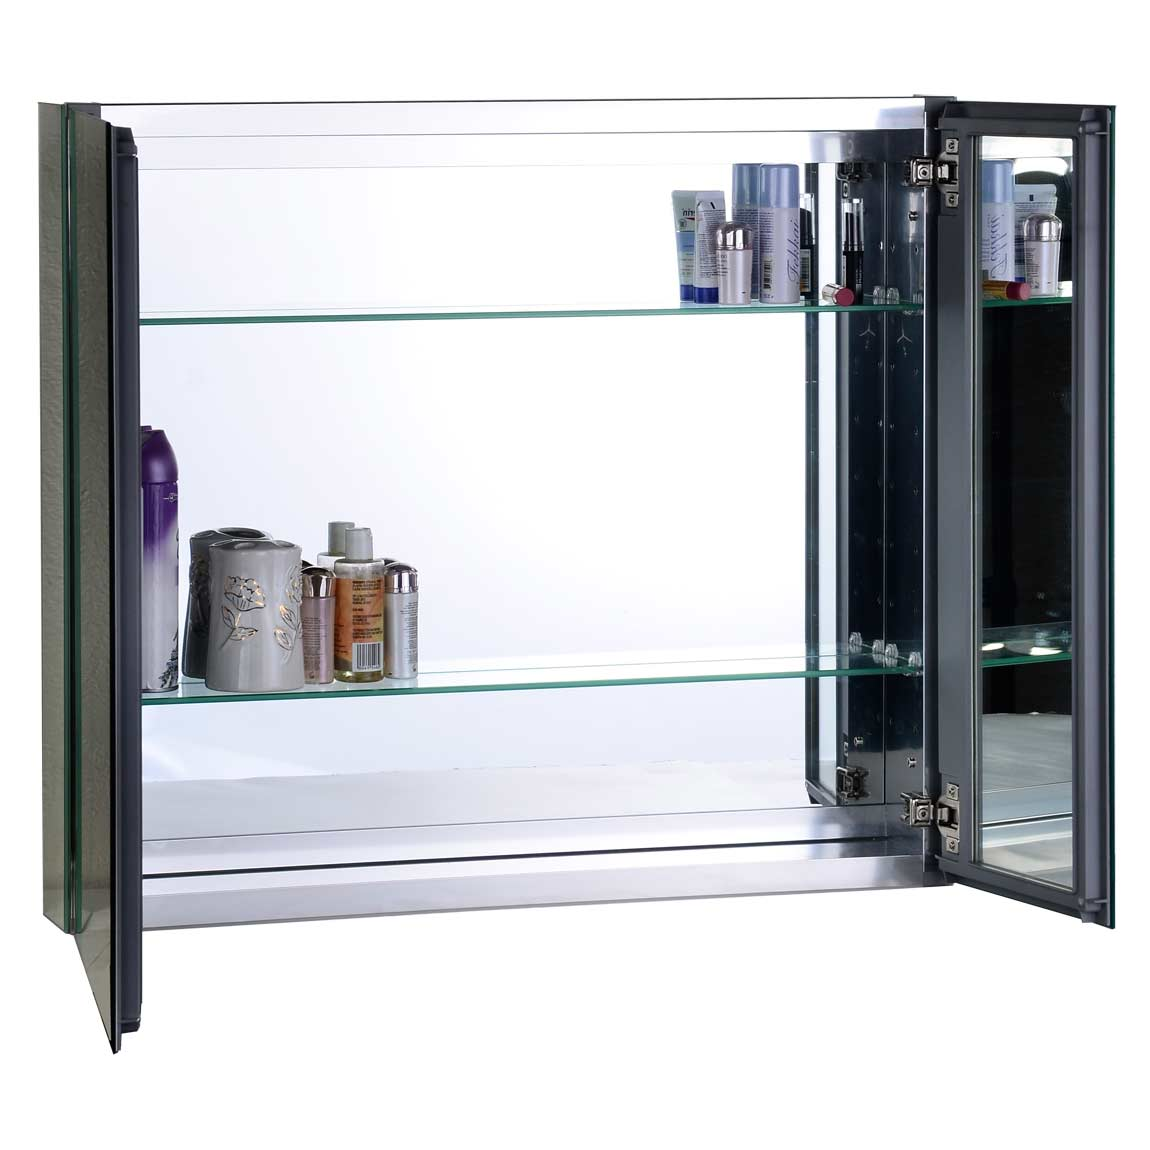 Buy Medicine Cabinet 295 In W X 2575 In H TN N800 MC